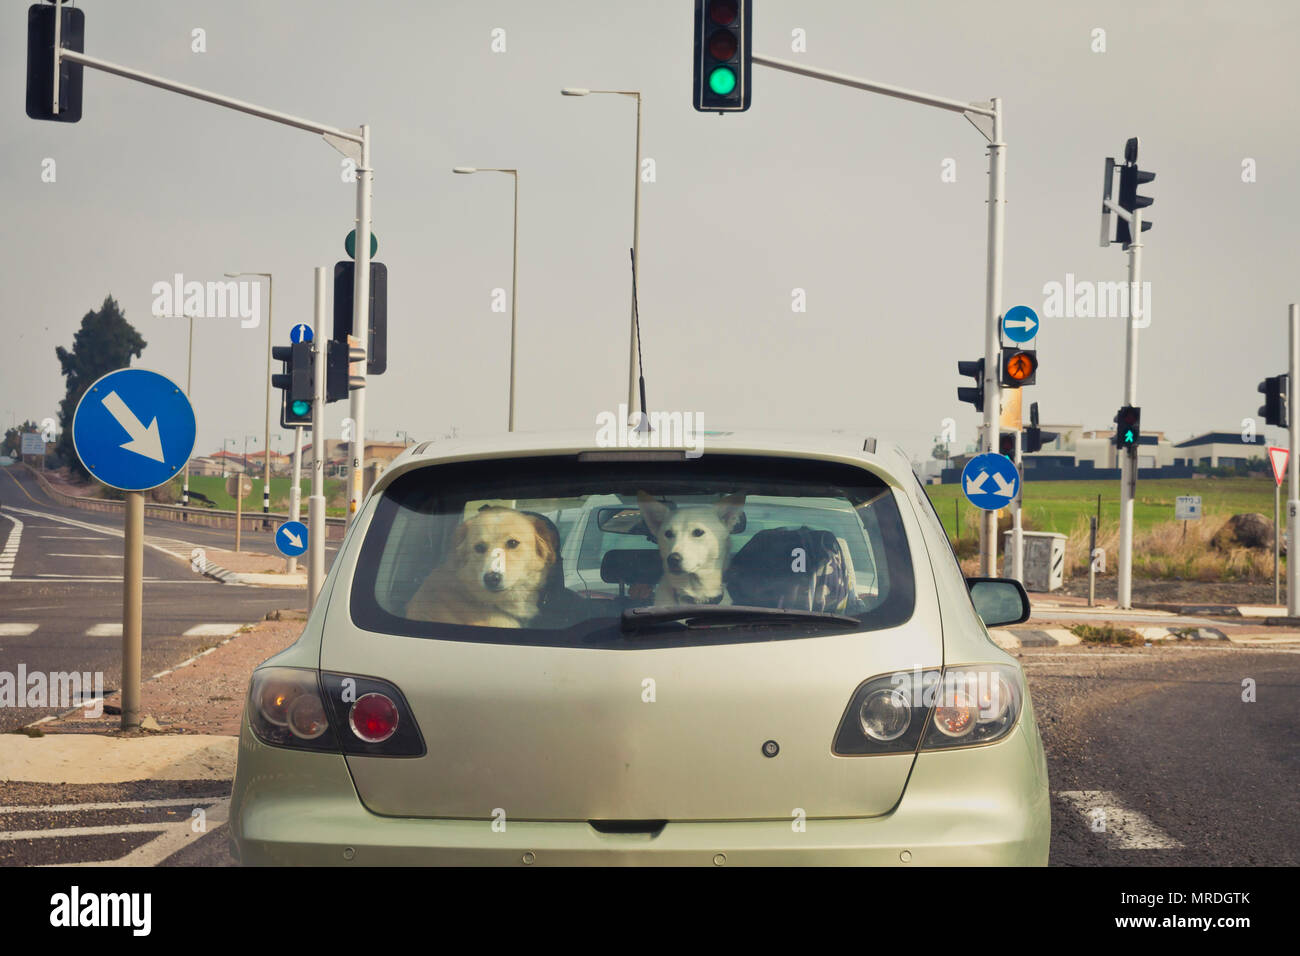 Two dogs behind the rear car window. - Stock Image